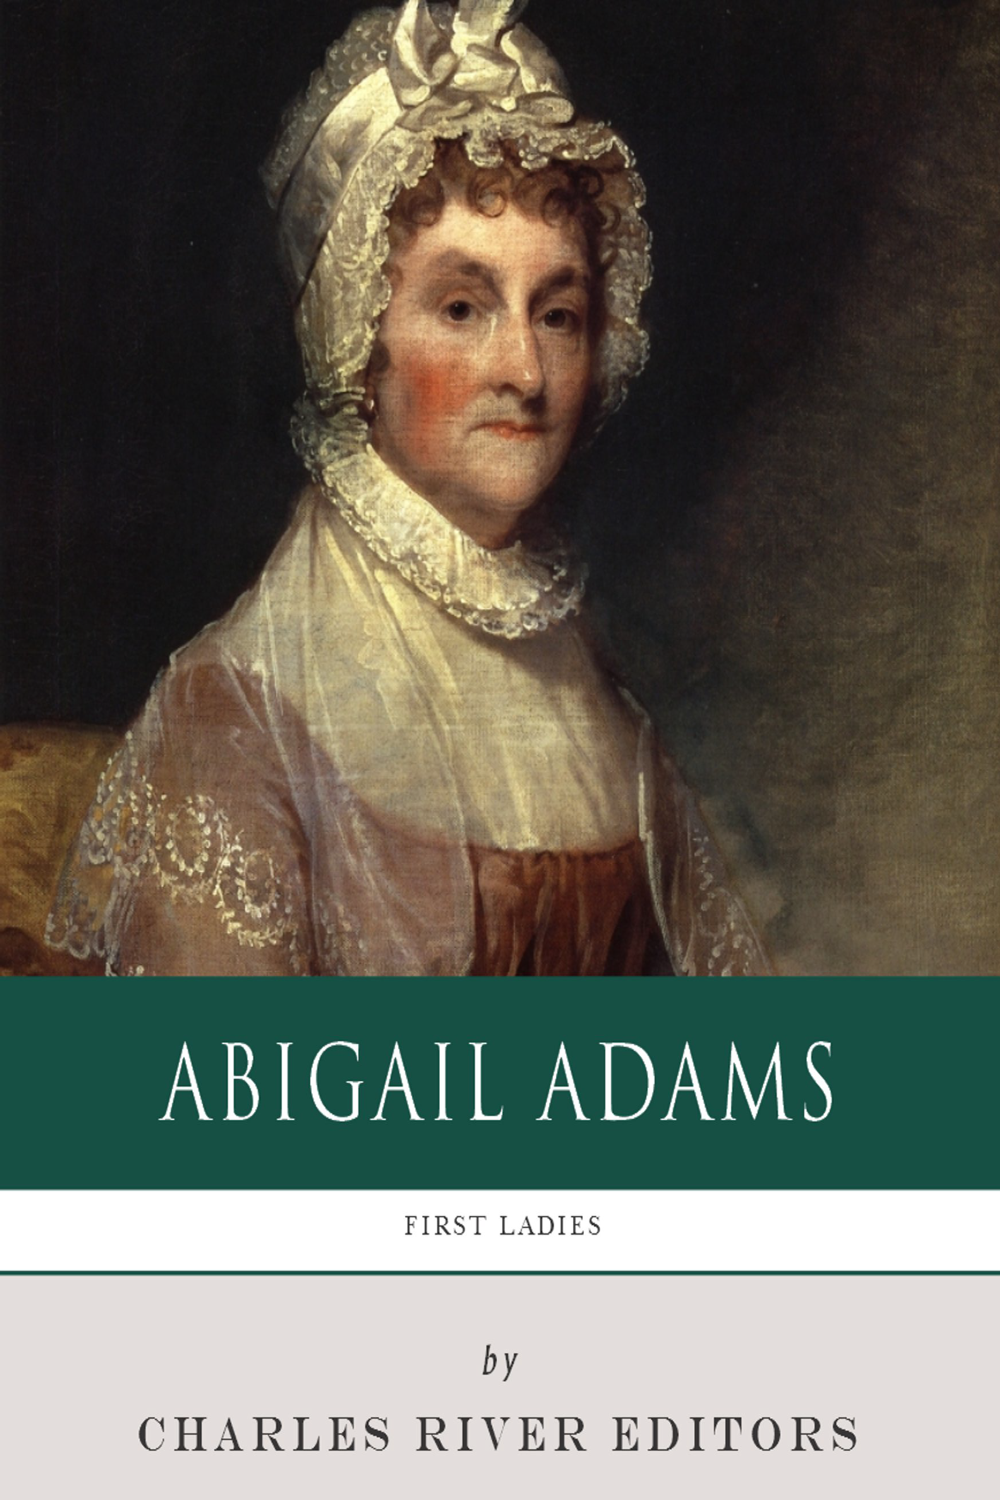 First Ladies: The Life and Legacy of Abigail Adams By: Charles River Editors